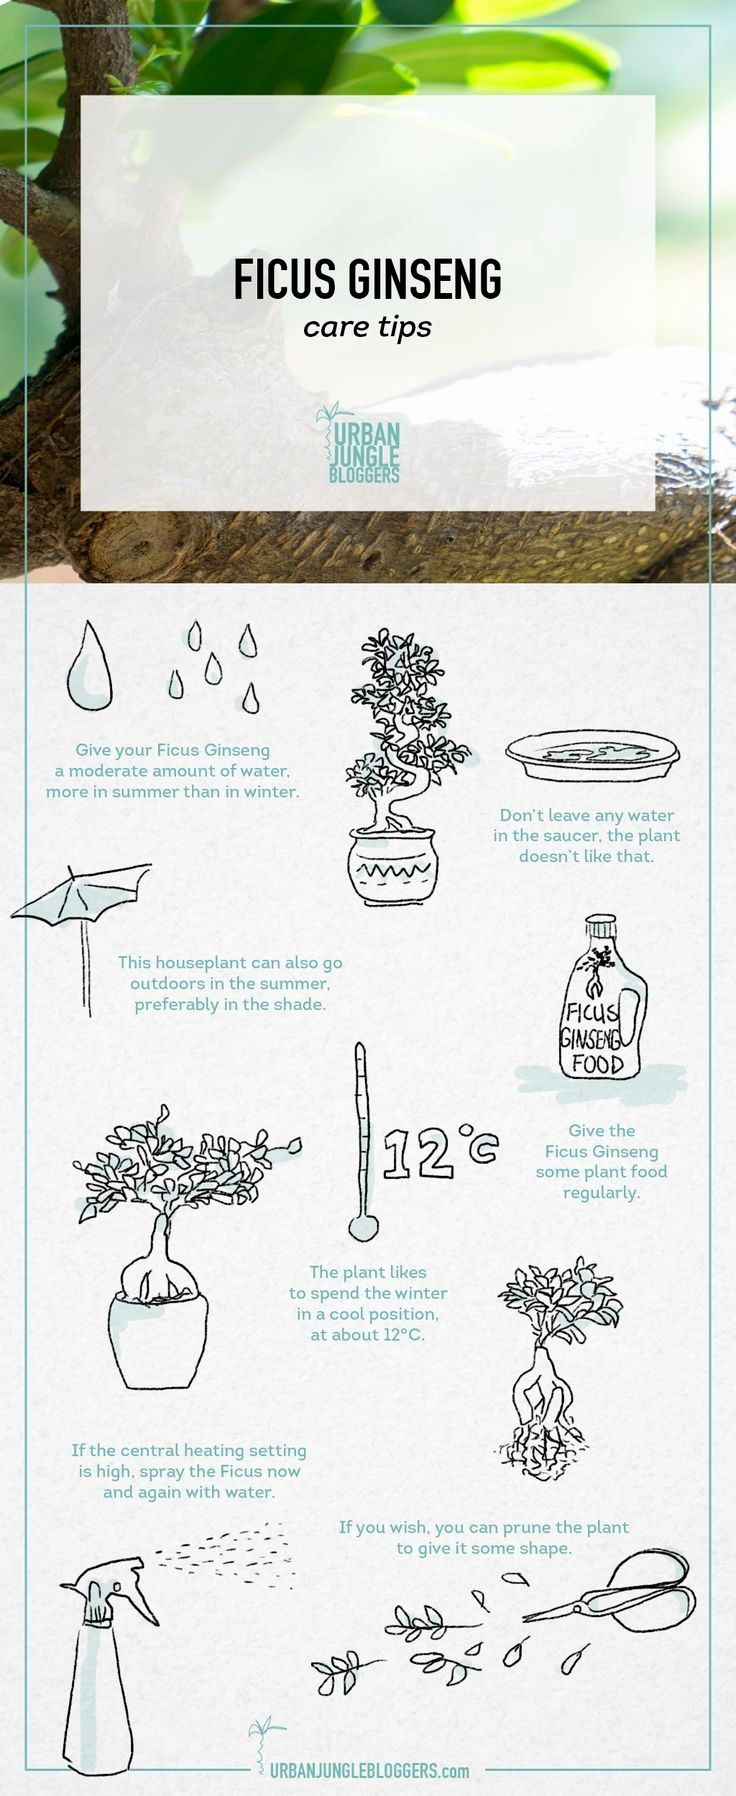 Ficus Ginseng care tips by Urban Jungle Bloggers